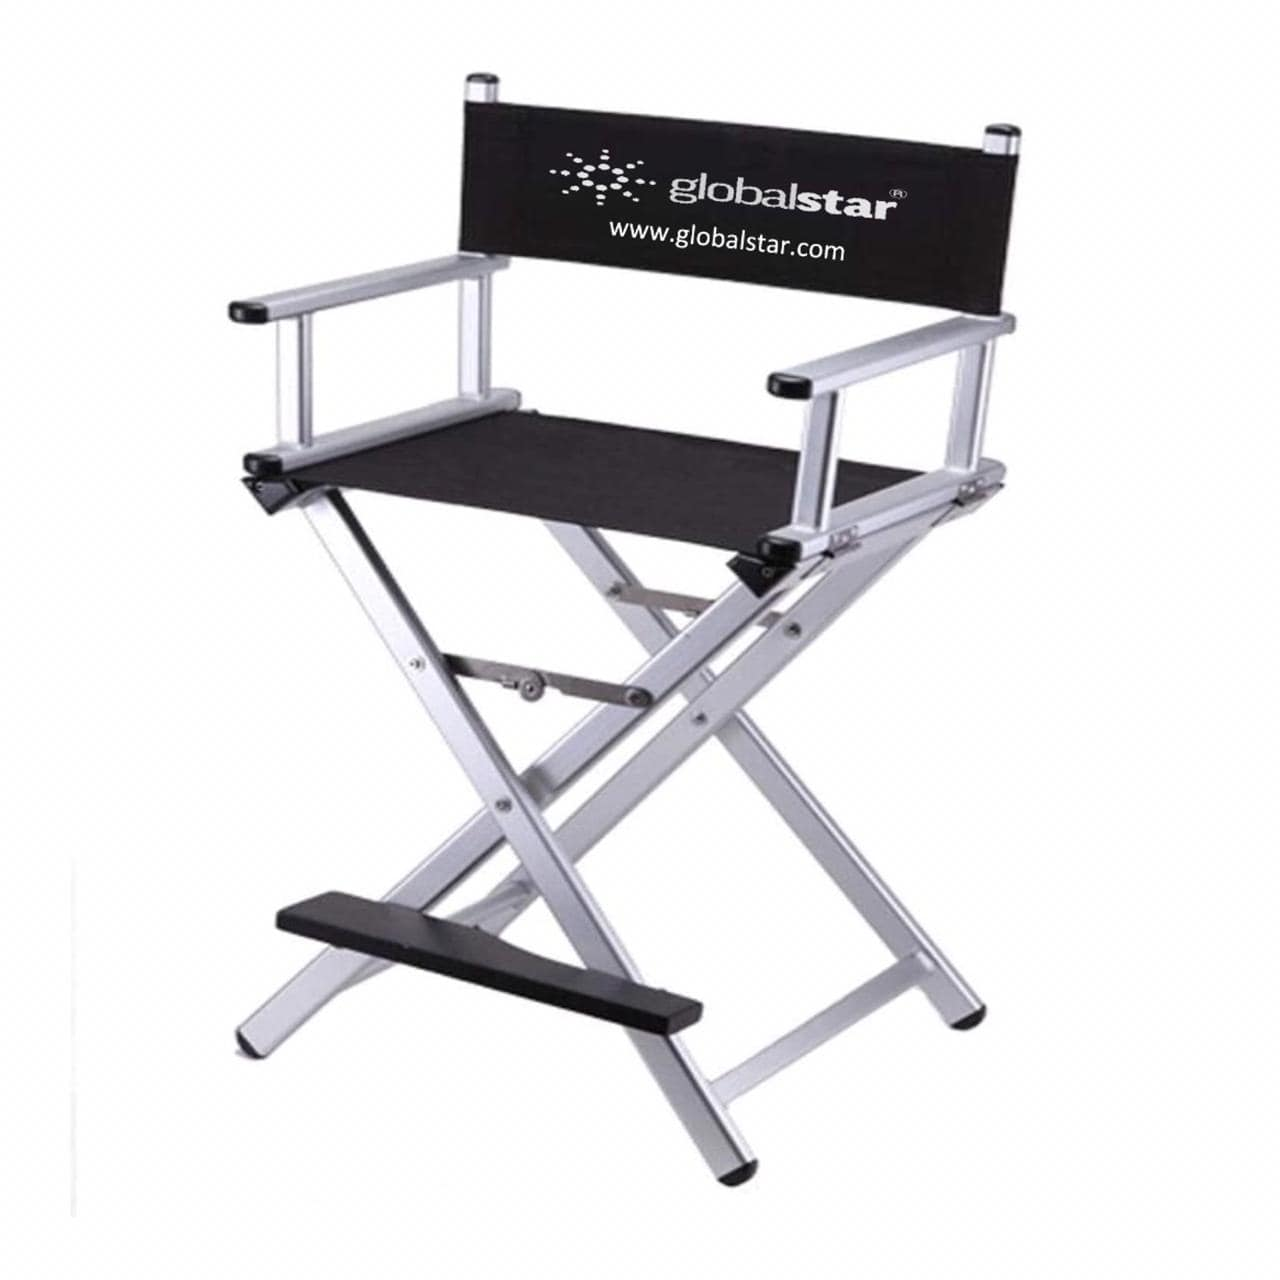 Globalstar Foldable Tall Makeup Chair Color Silver - MY739S